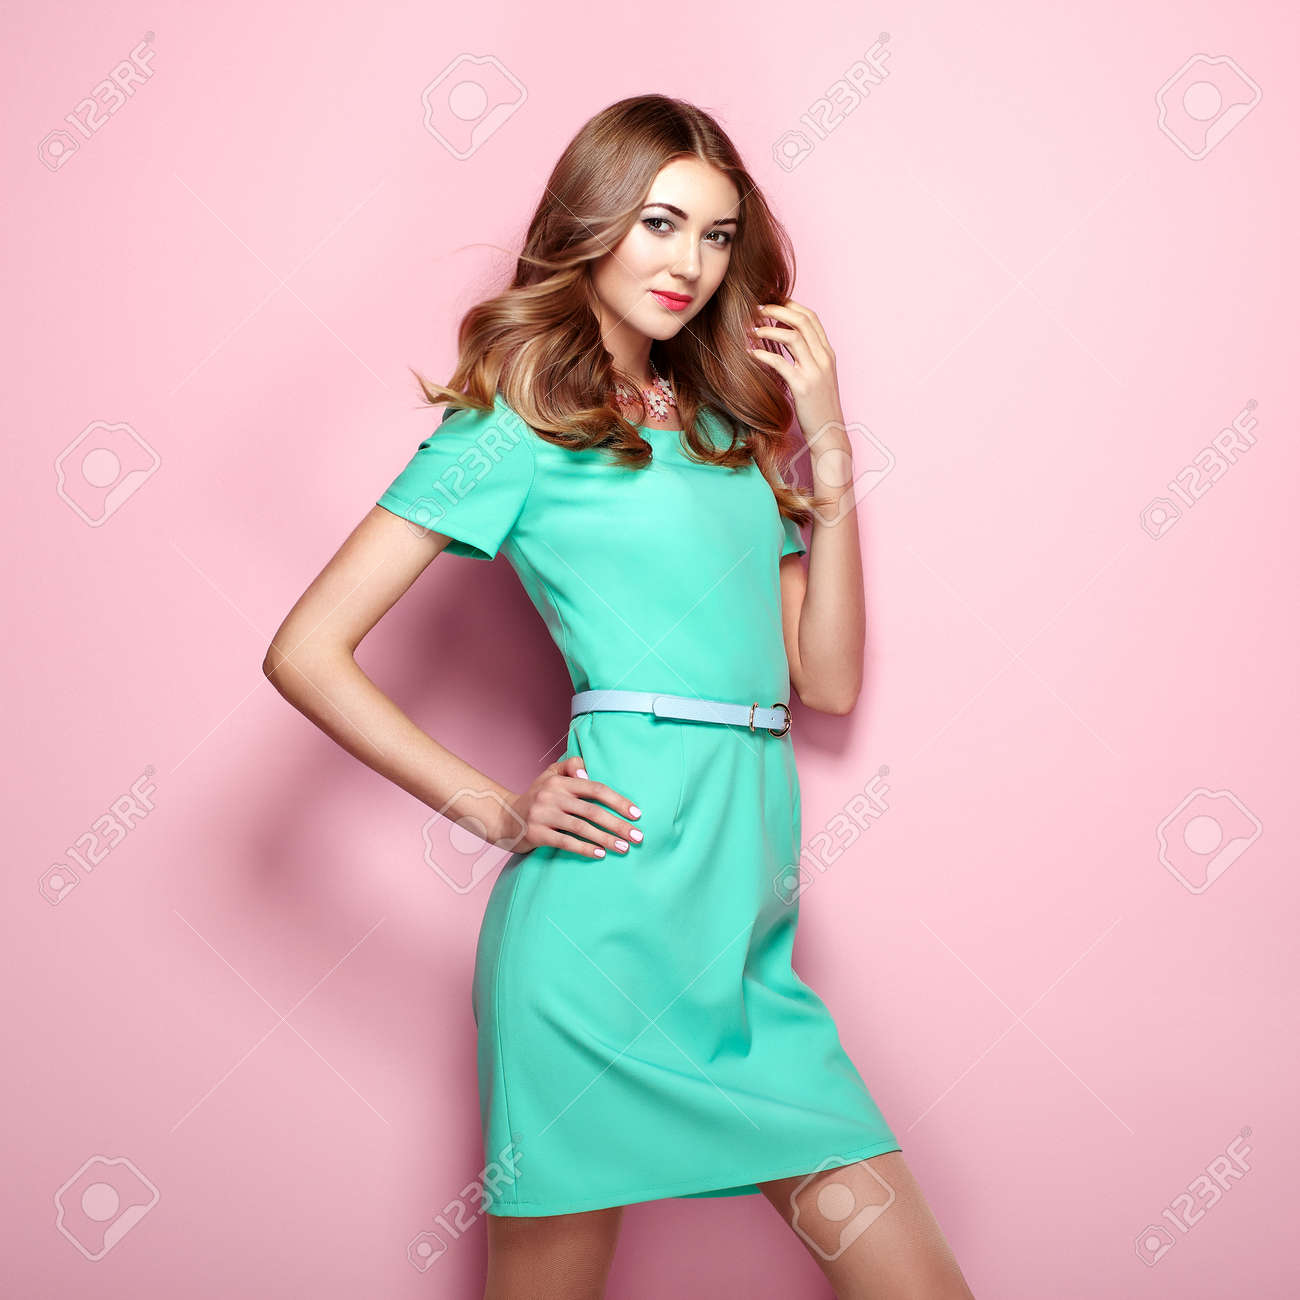 Blonde young woman in elegant green dress. Girl posing on a pink background. Jewelry and hairstyle. Fashion photo - 71386964